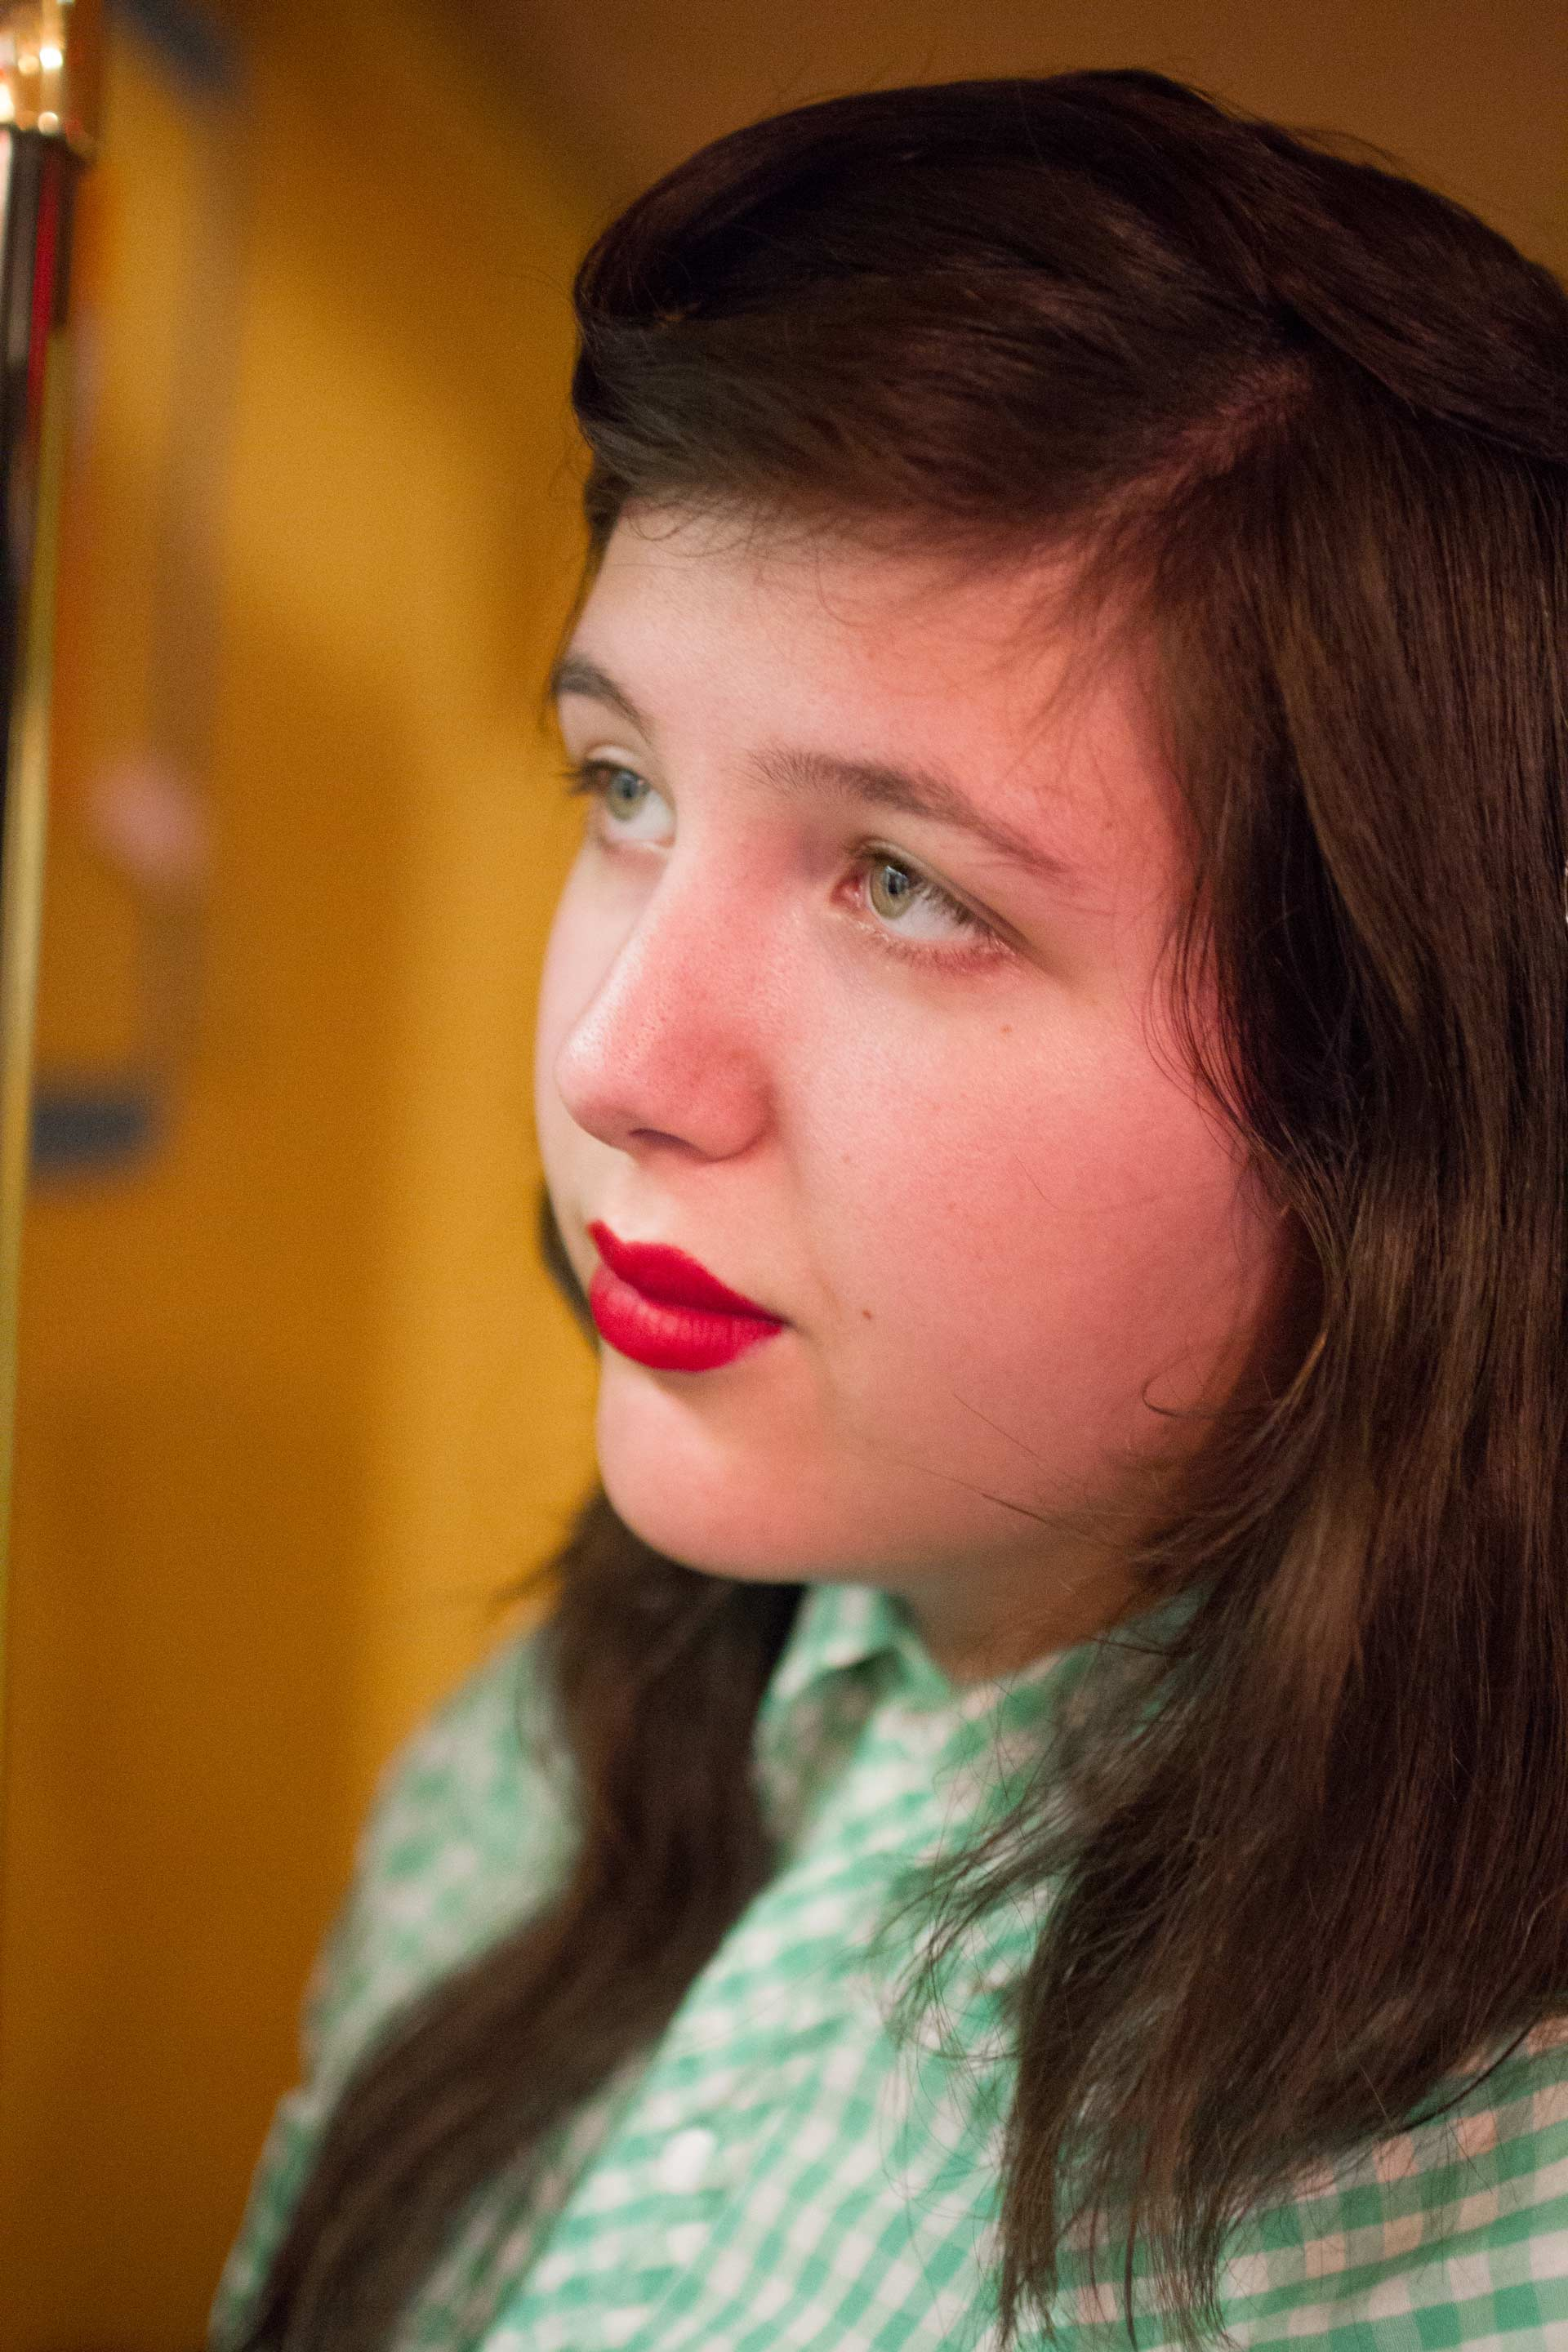 lucydacus08